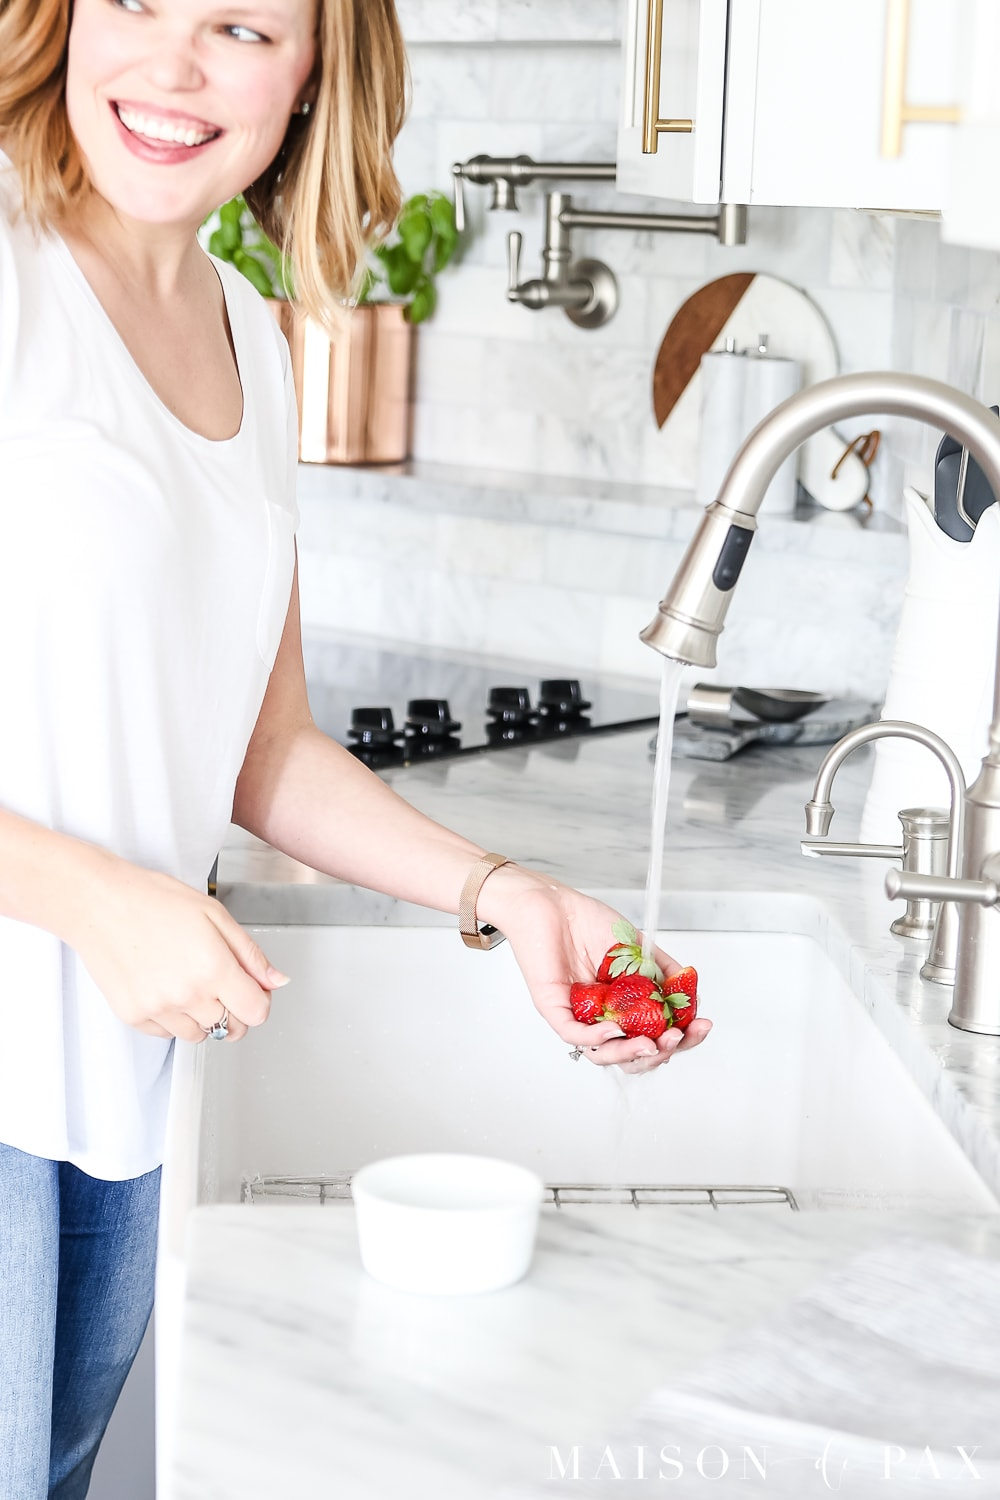 Simple spring kitchen tips: refresh your space (without spending a ton) with these easy ideas! #springkitchen #kitcheninspo #marblekitchen #kitchendesign #springdecor #springdecorating #kitchendecor #twotonekitchen